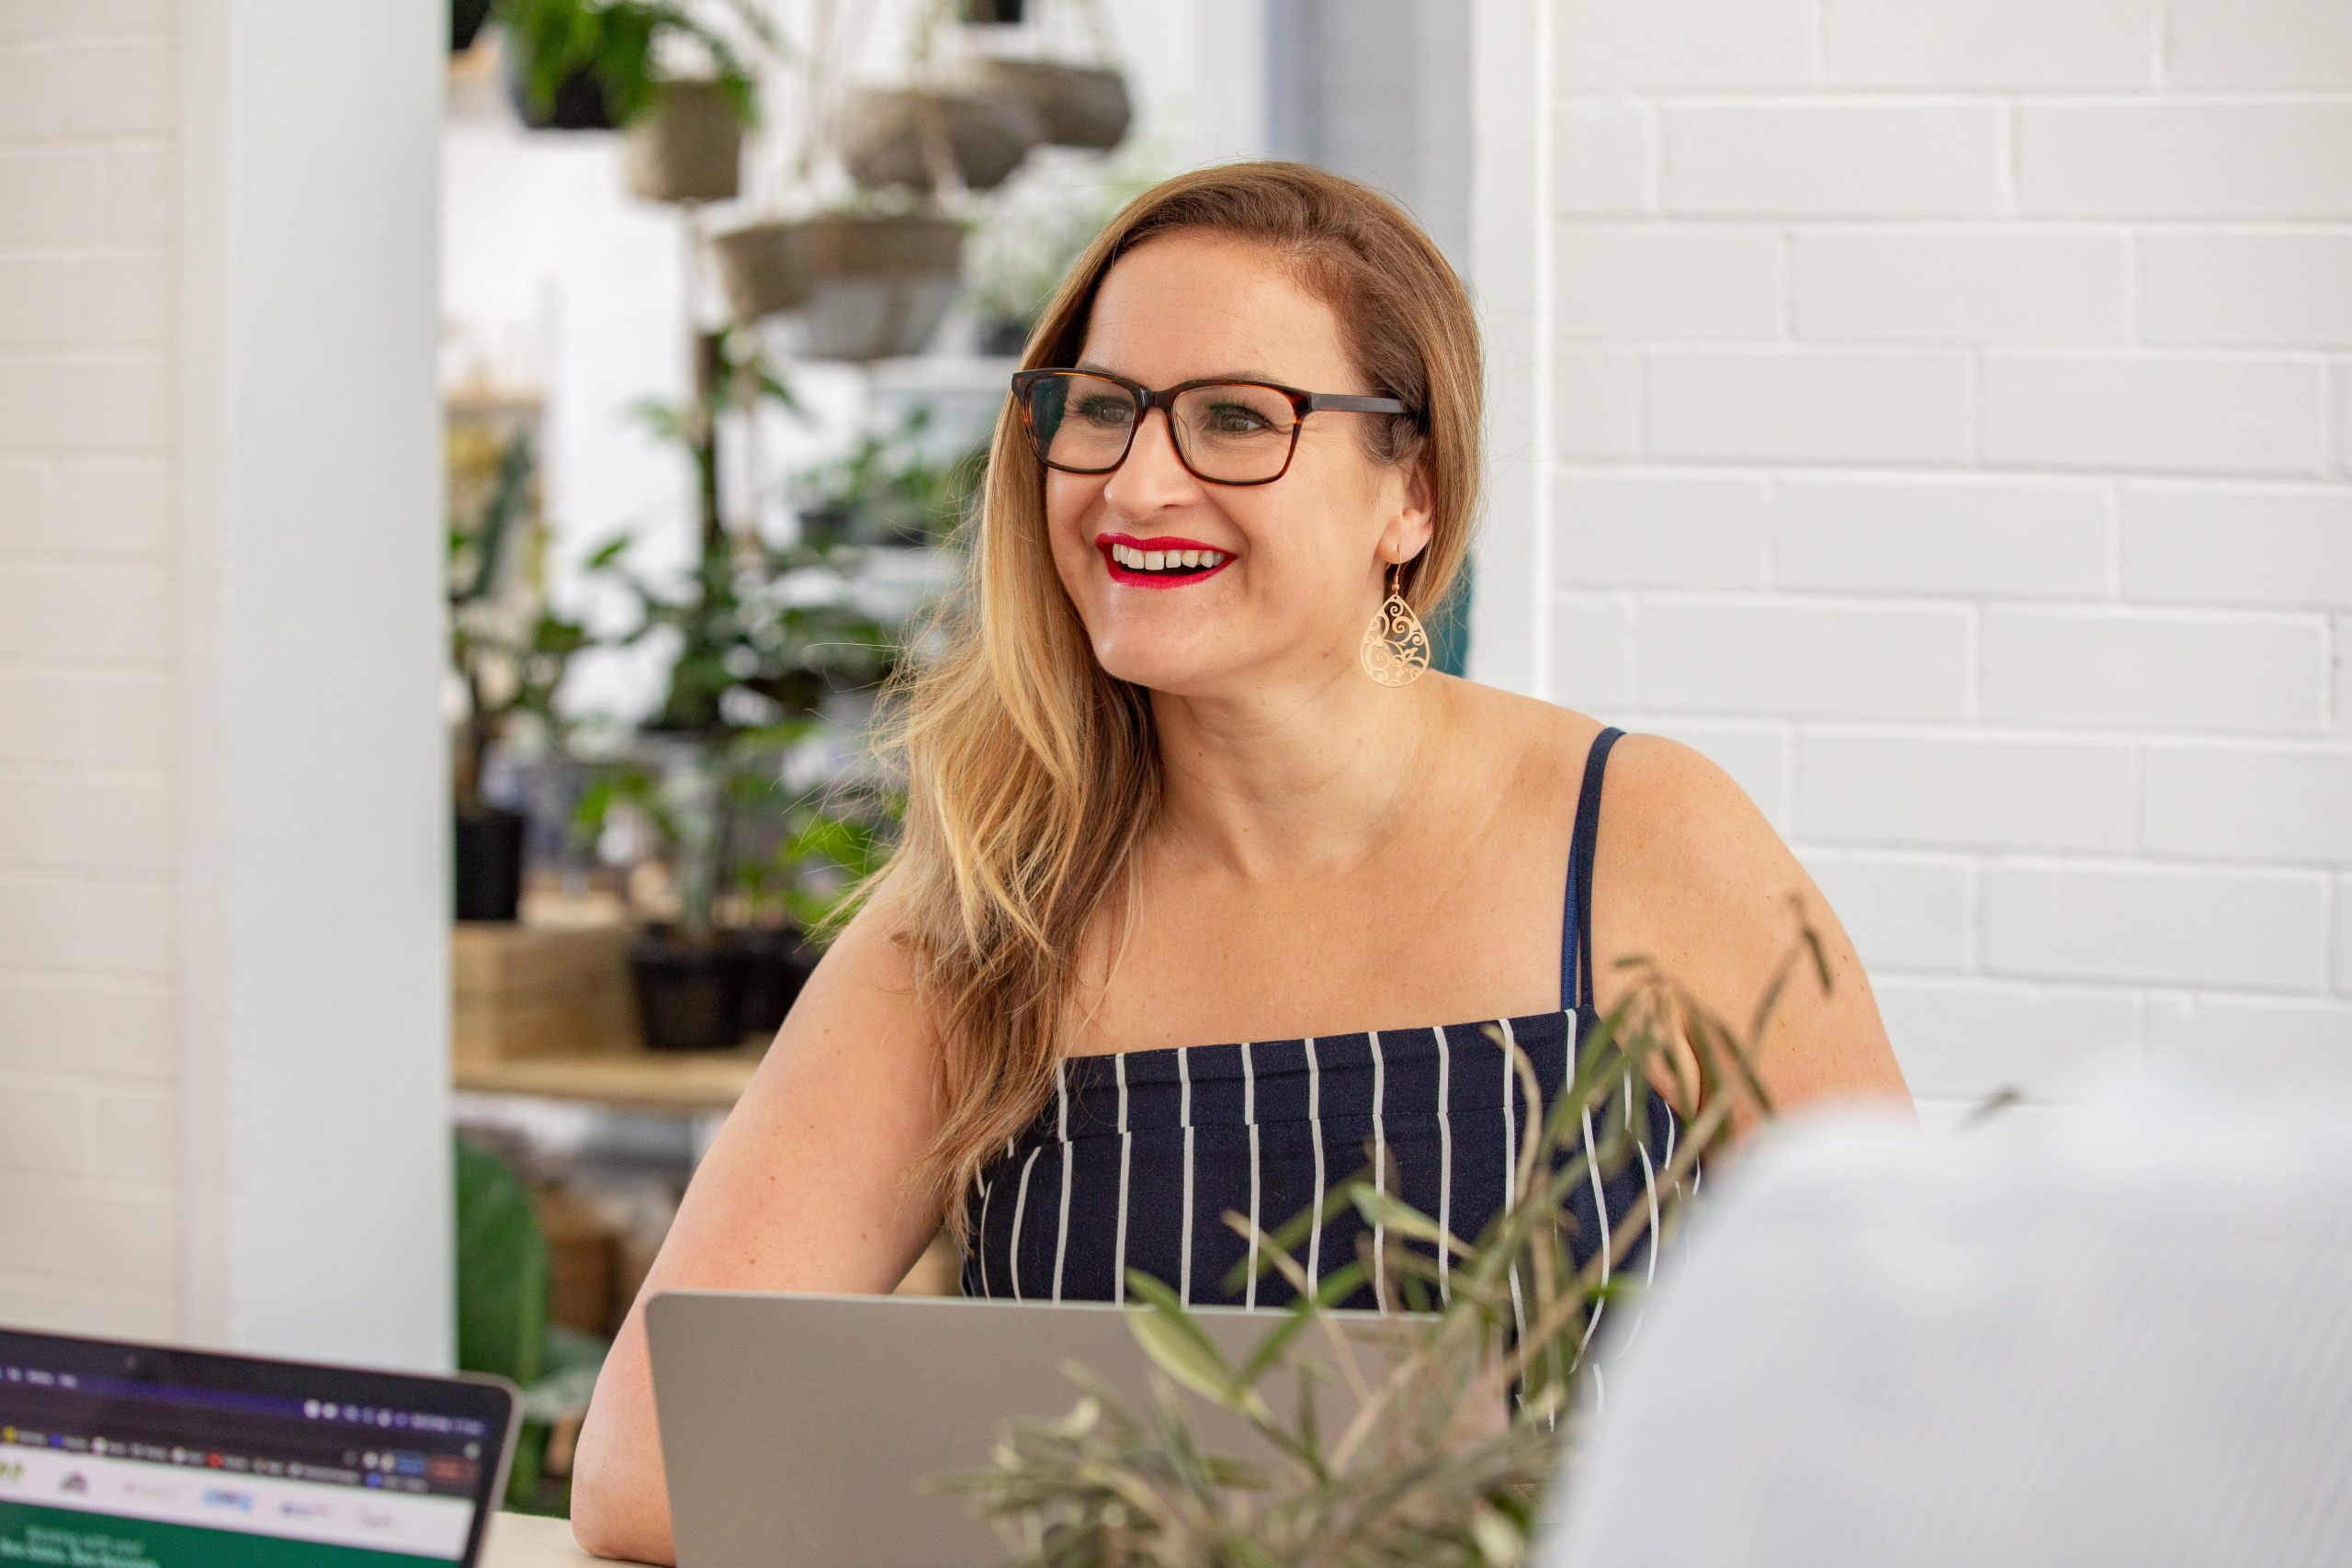 Affordable SEO for Small Businesses - Smiling woman with a laptop